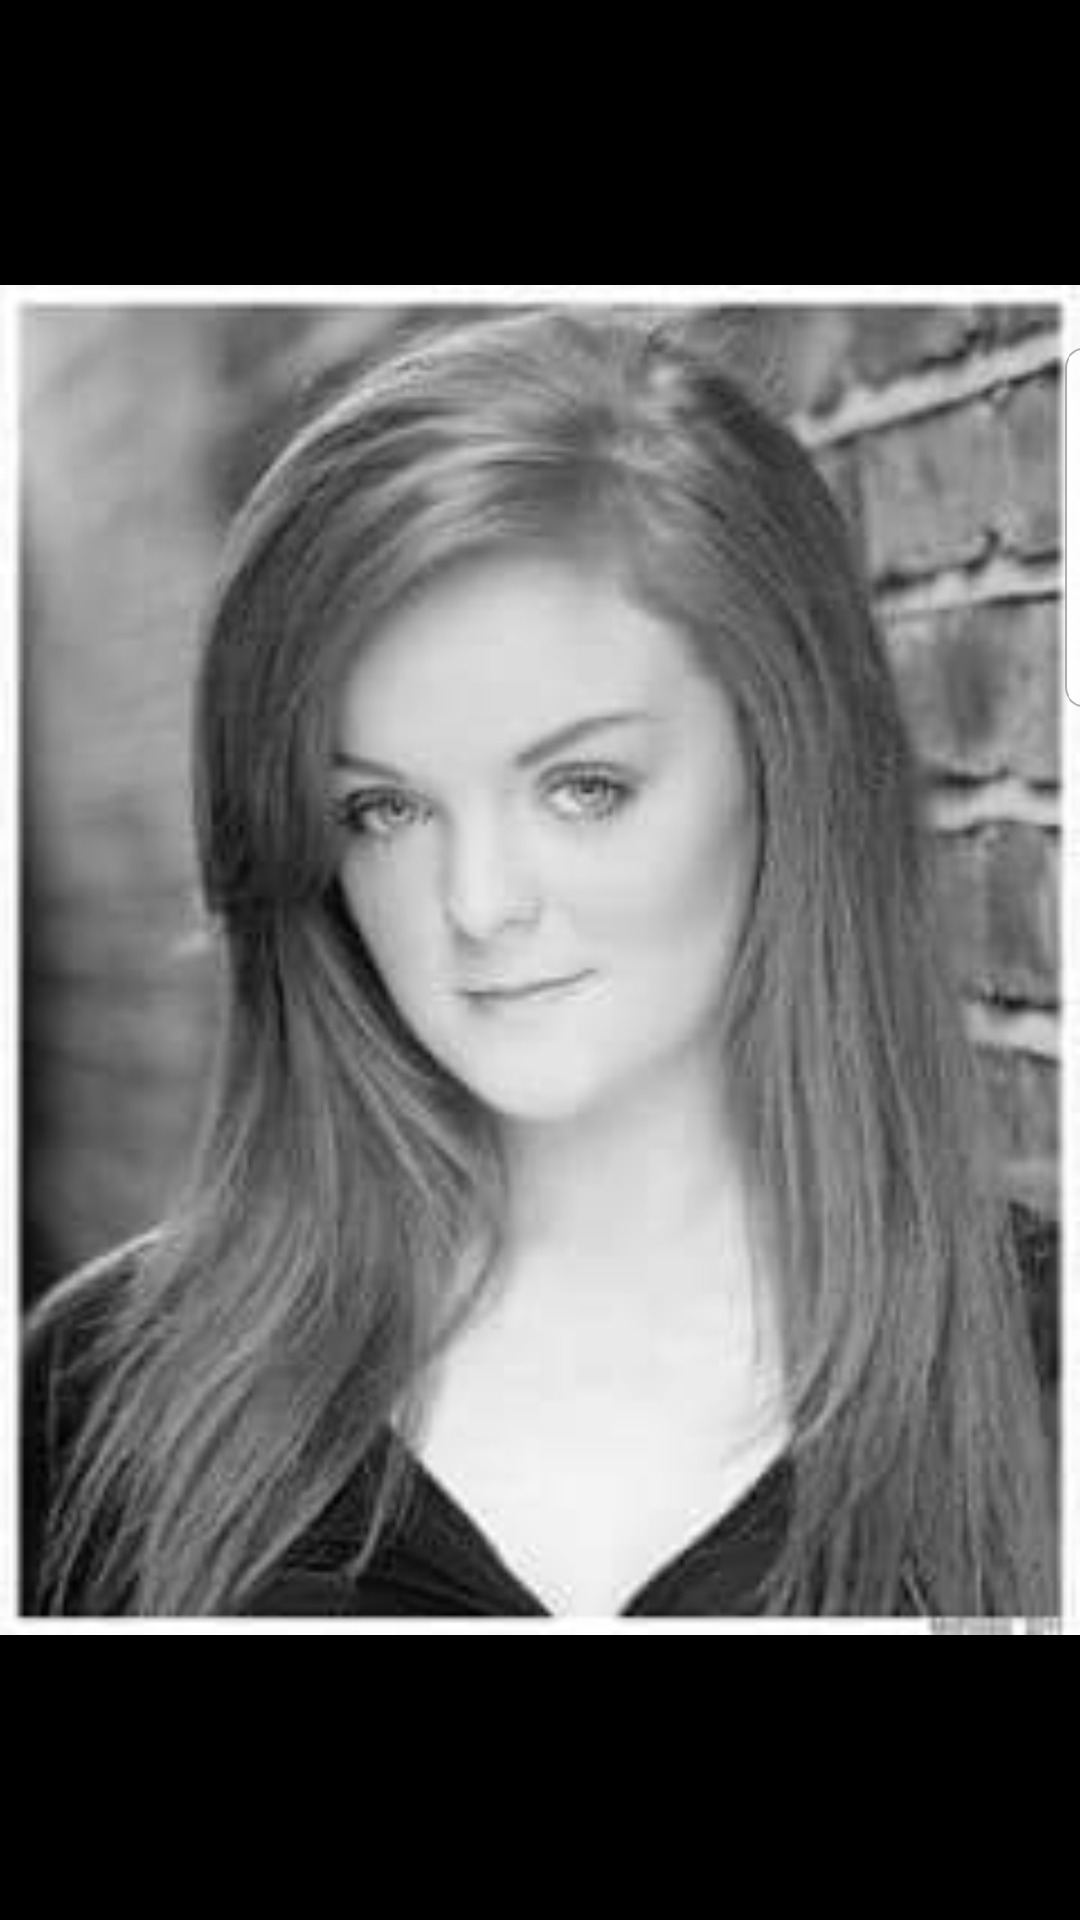 LEA CARROLL - Ireland   As a dance instructor and former world competing baton twirler, Lea is the perfect choice for our body choreography station at the clinic